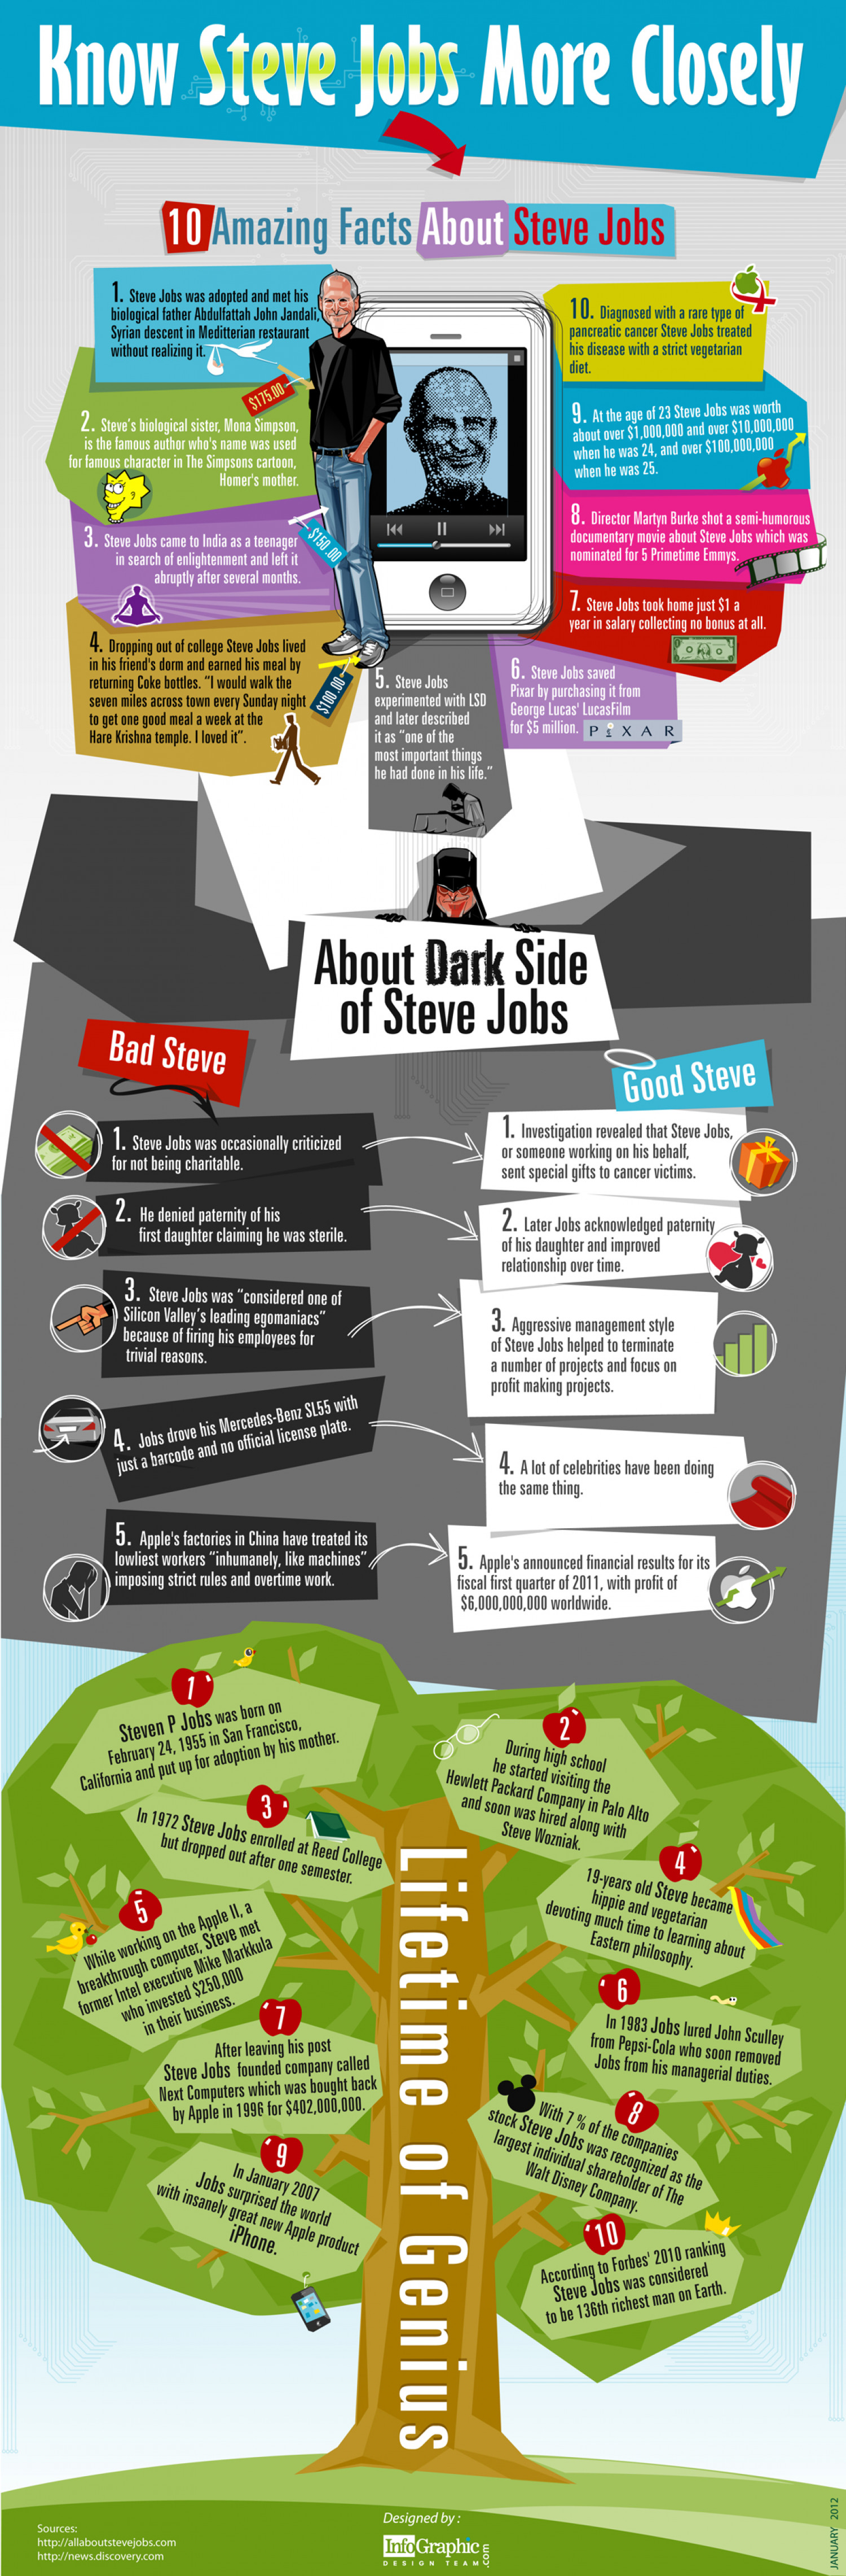 Know Steve Jobs More Closely Infographic